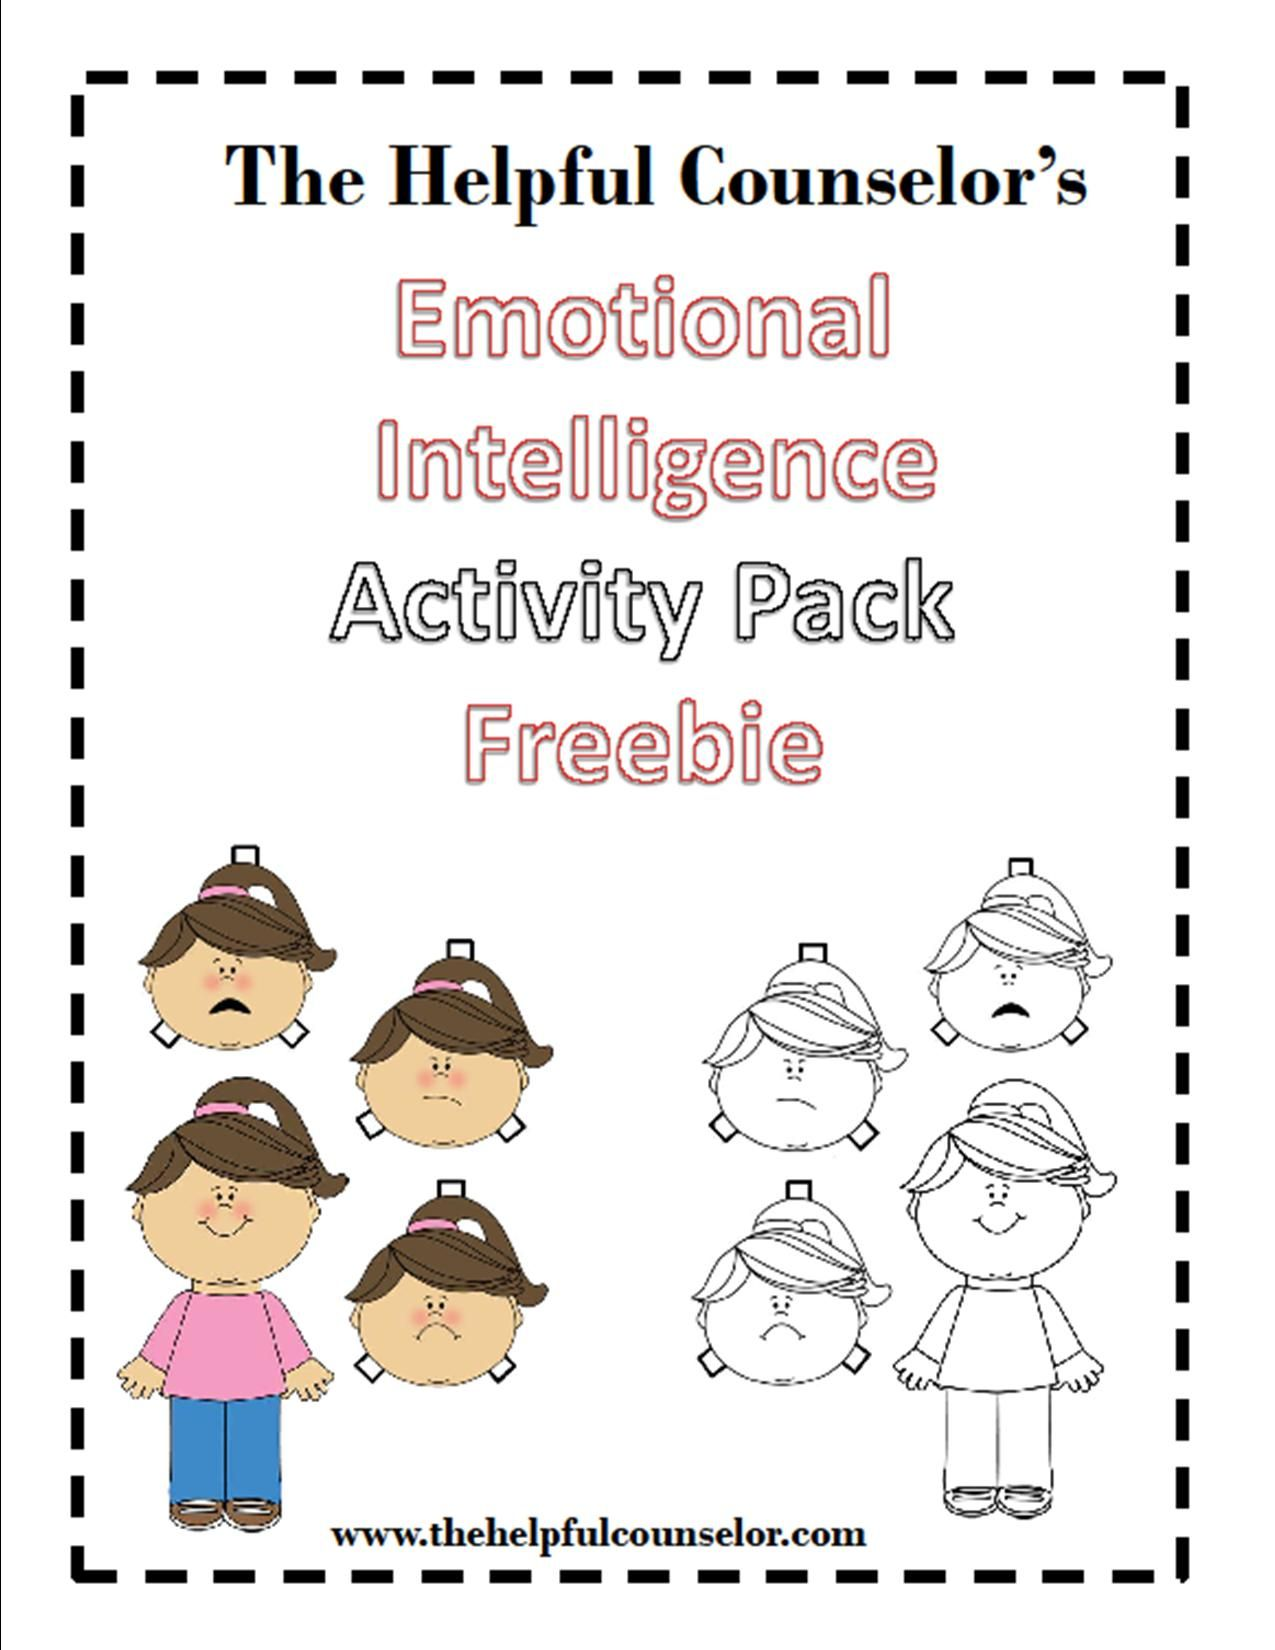 Emotional Intelligence Free Activities